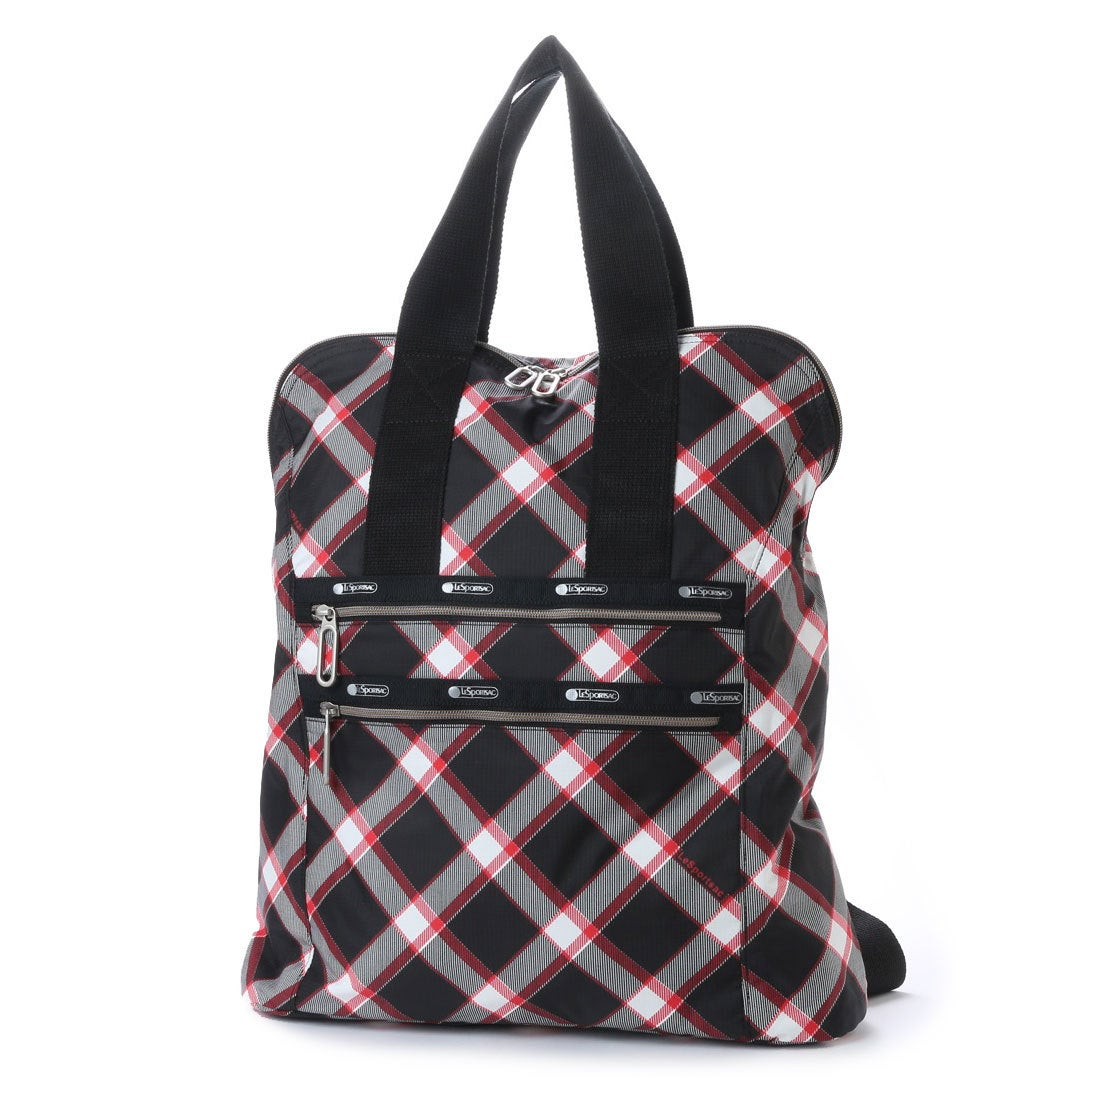 【SALE 29%OFF】レスポートサック LeSportsac COMMUTER BACKPACK (PARTY PLAID C) レディース